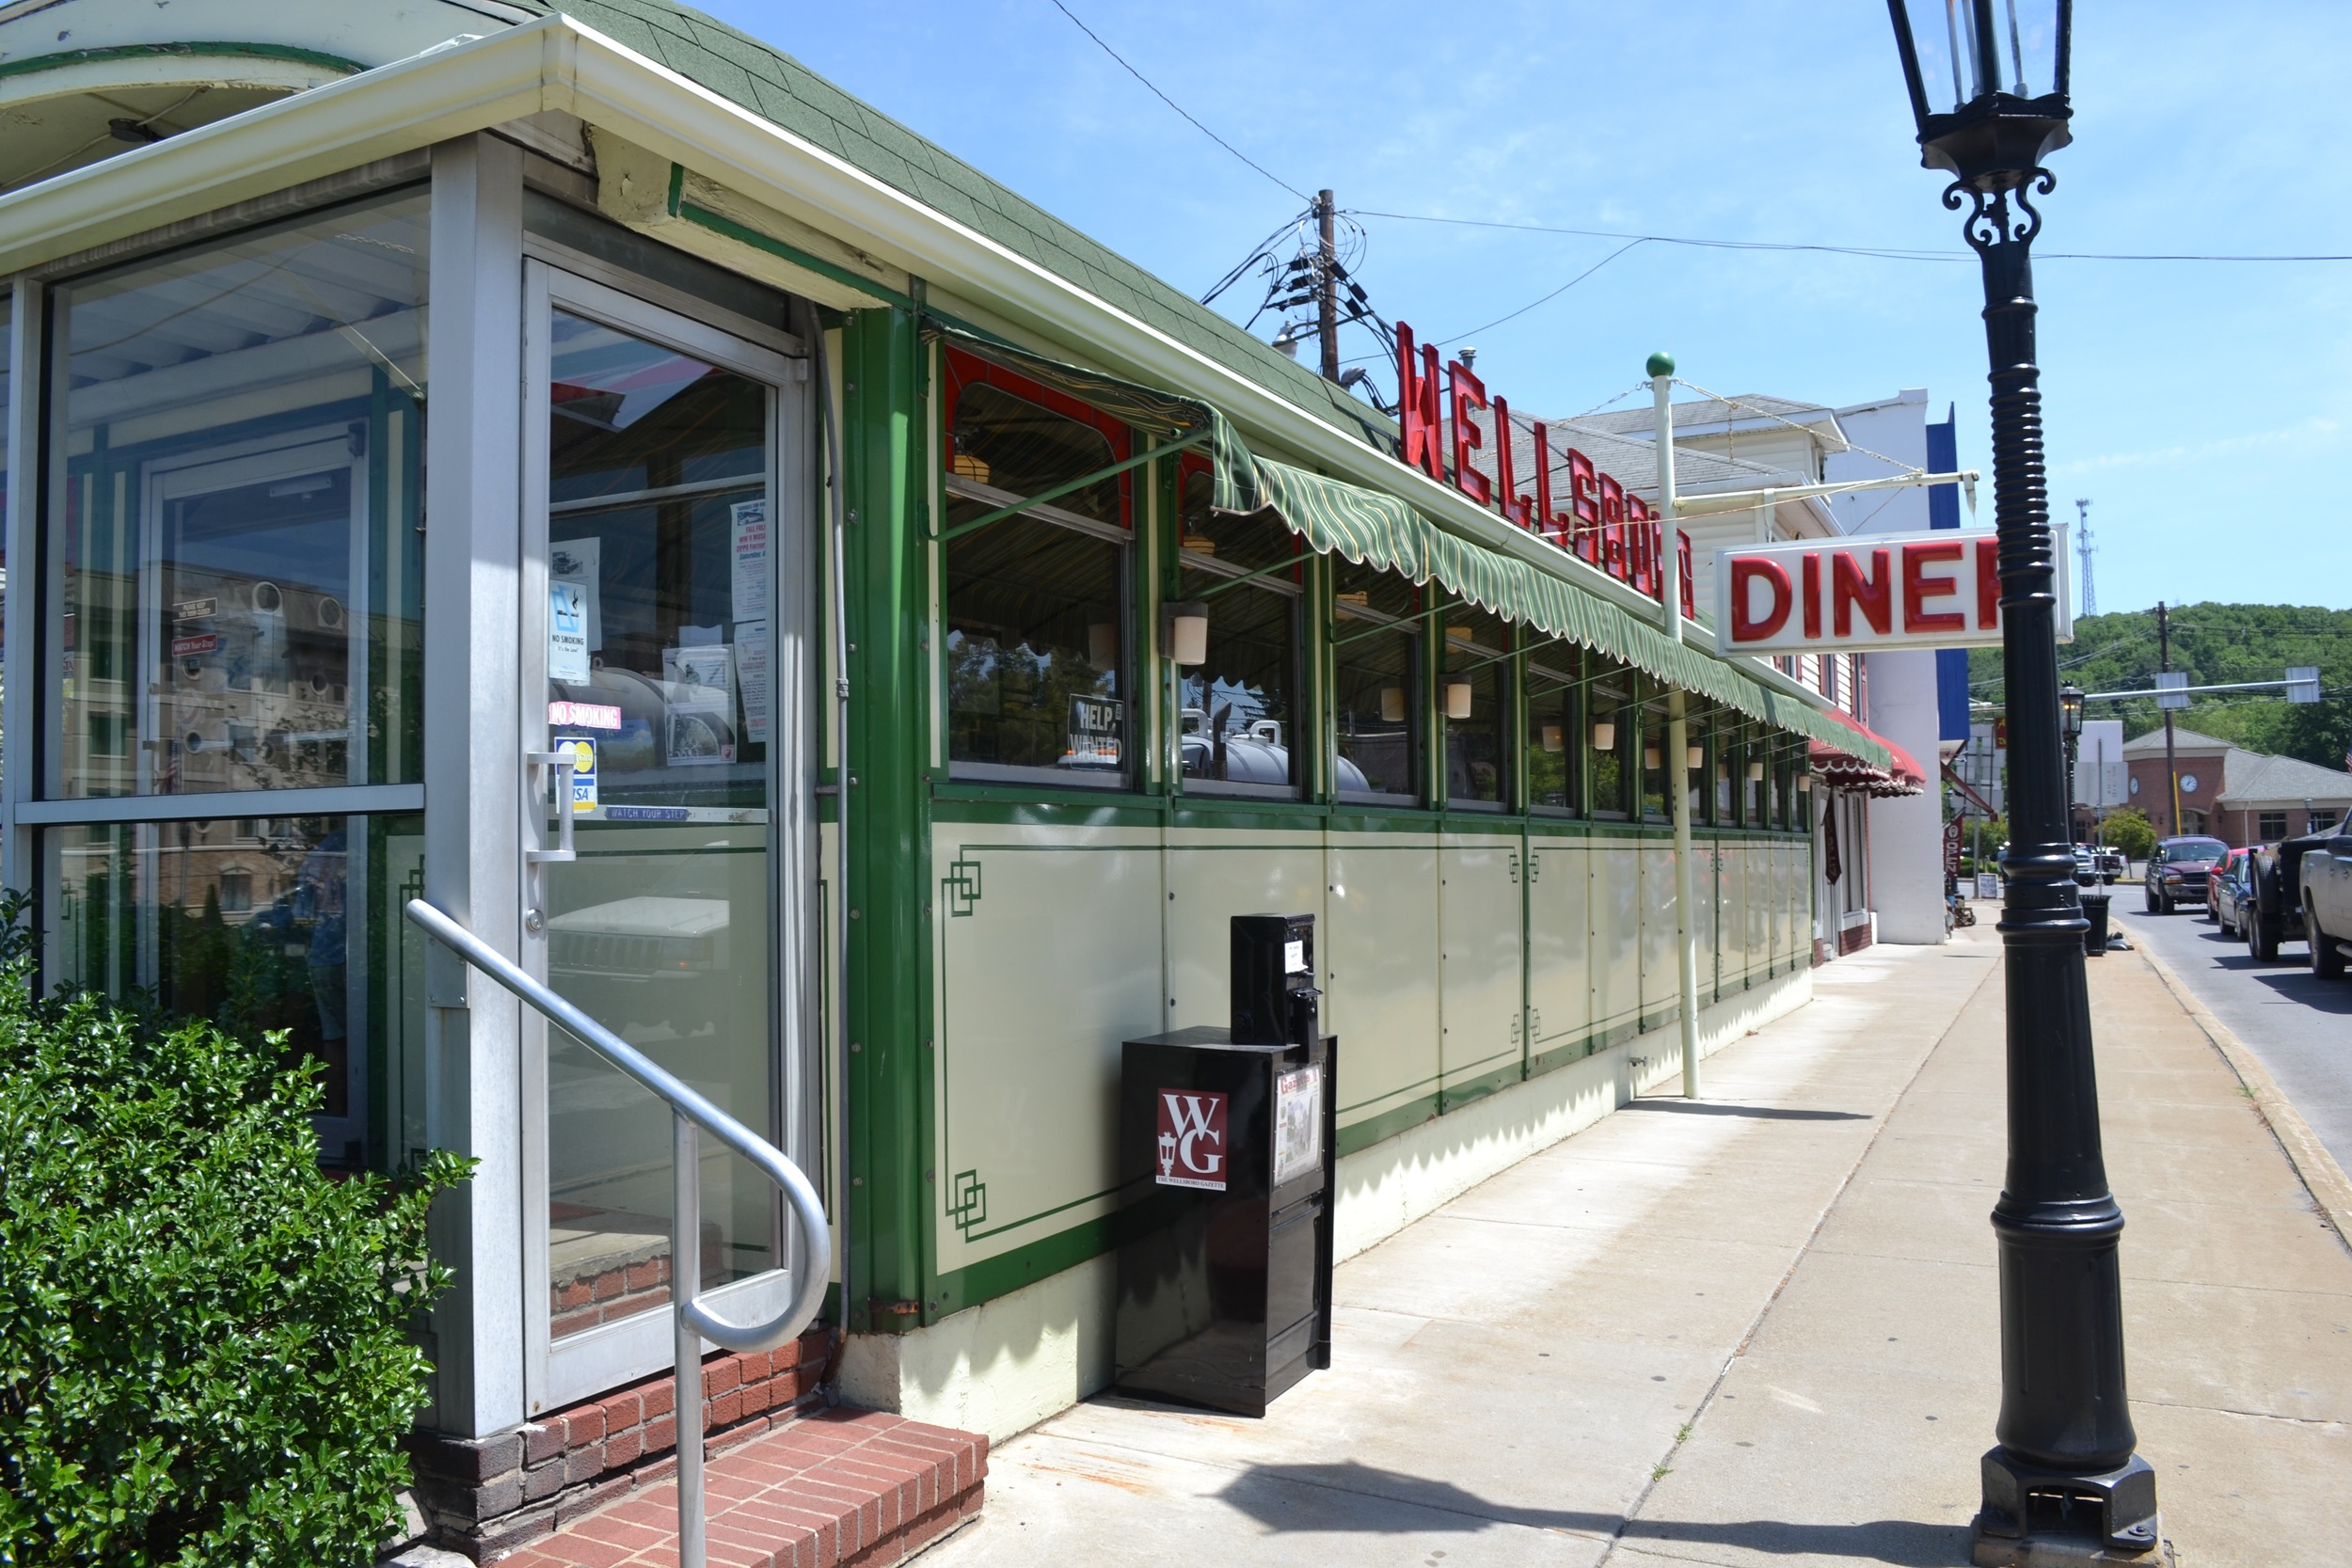 The Wellsboro Diner is a must see in this cutesy small town. It's an old car-stye diner!